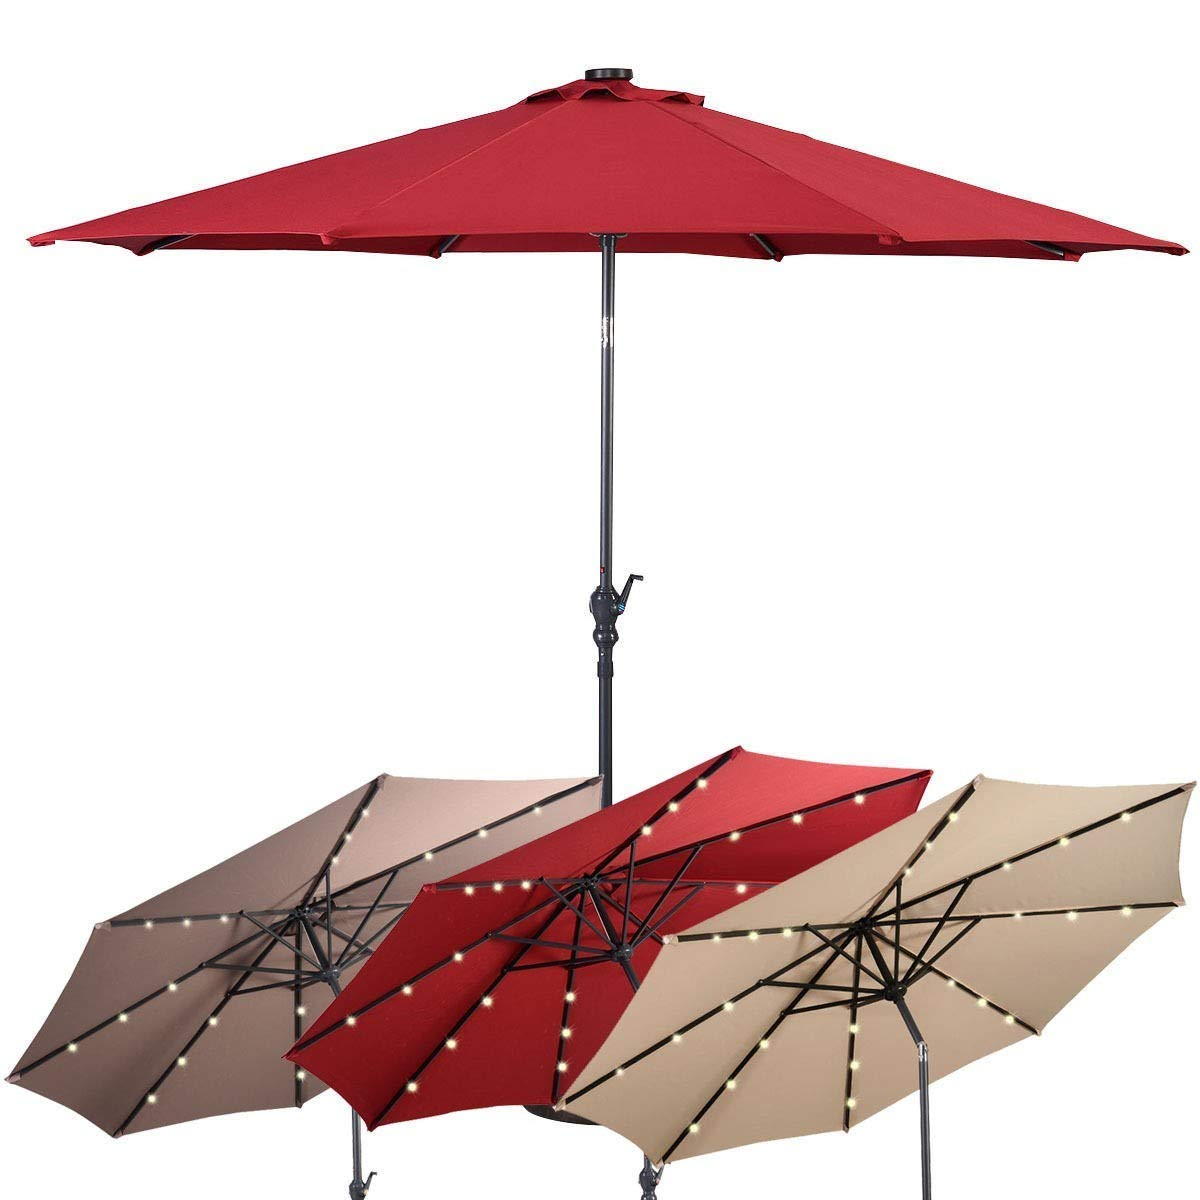 10 ft Patio Solar Umbrella With Crank And LED Lights I Umbrella With Lights I Patio Umbrellas With Solar Lights I Led Solar Umbrella I Solar Uumbrellas With Lights I Patio Umbrella Solar Lights I by BESTGOODSHOP